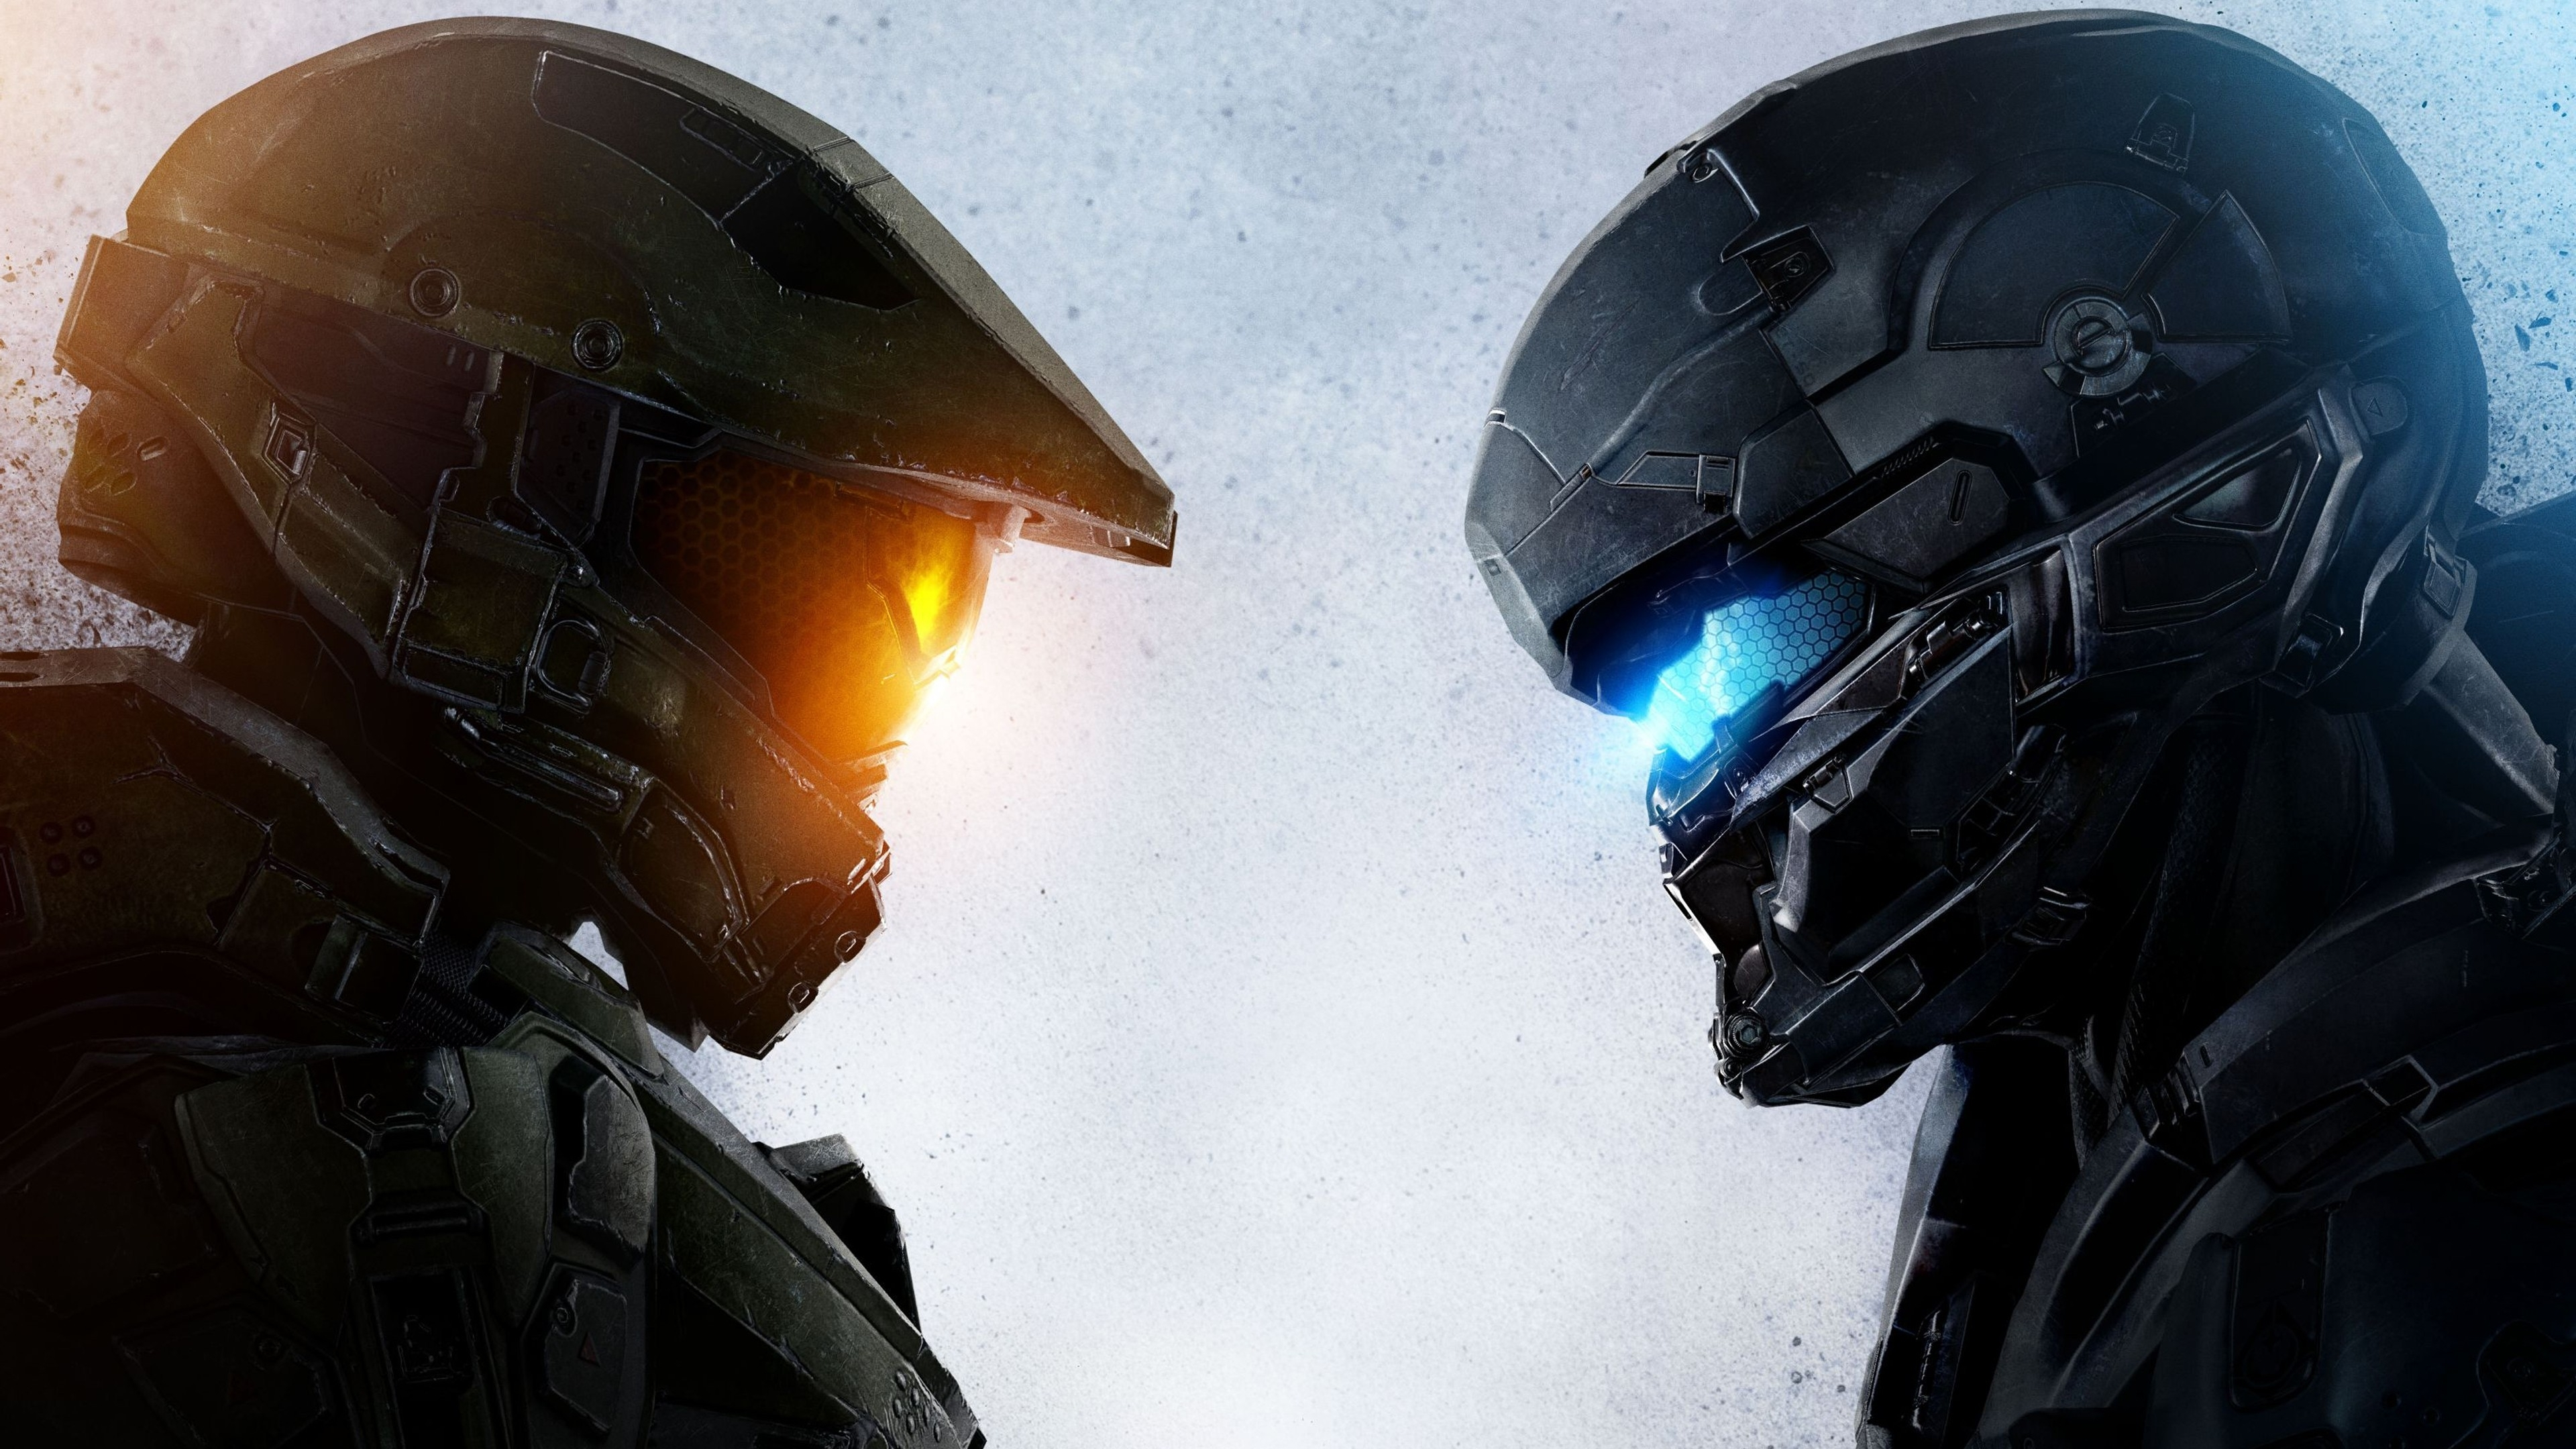 10 Top Halo 5 Master Chief Wallpaper FULL HD 1920×1080 For ...